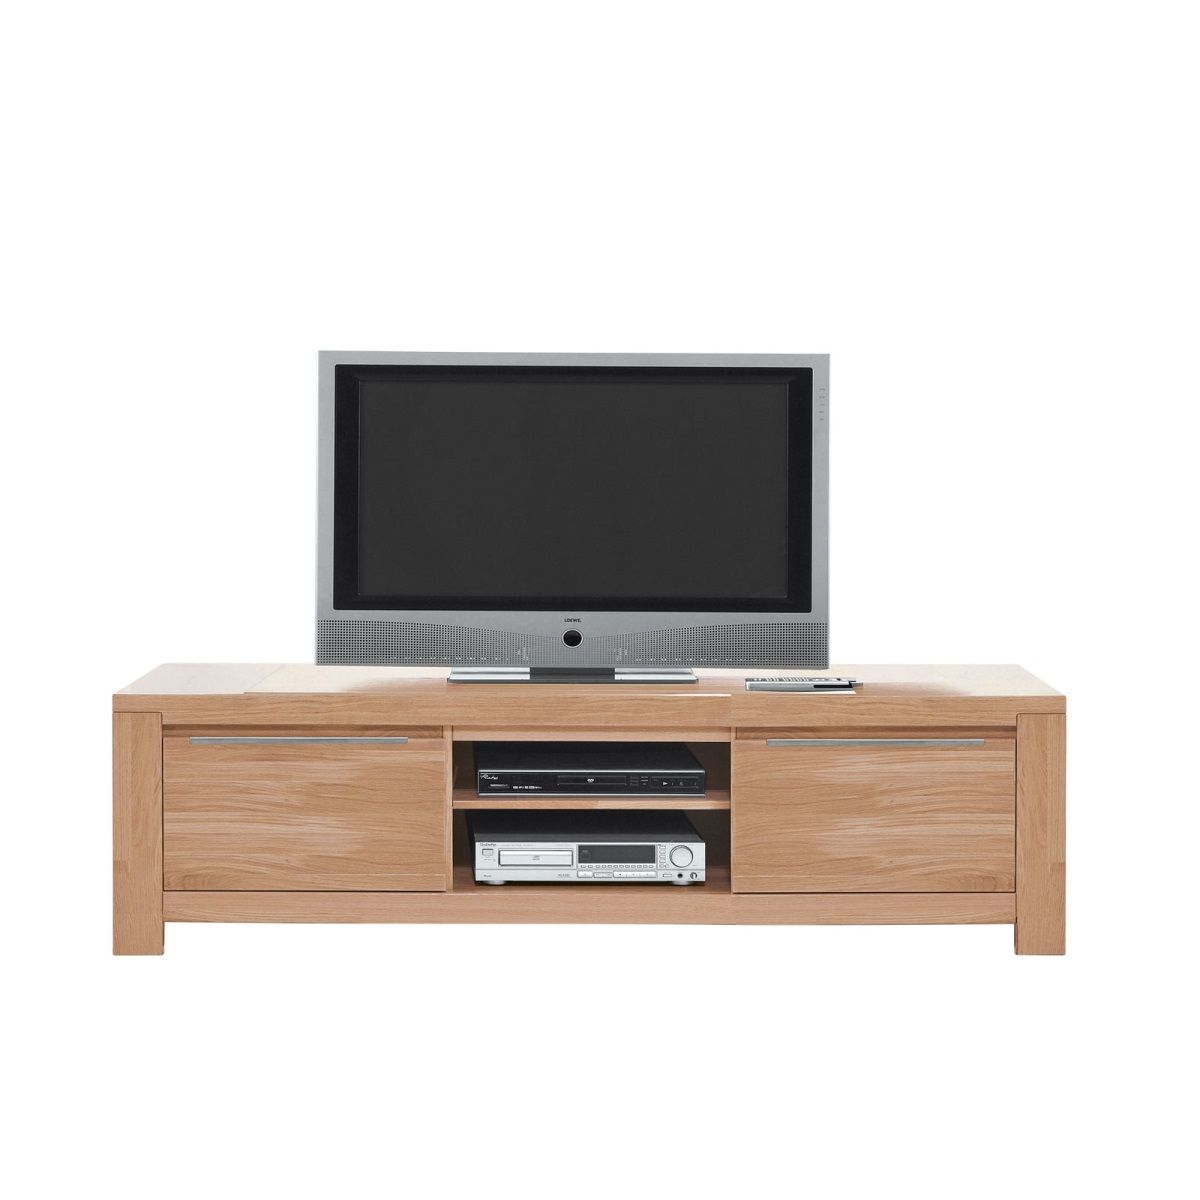 Couchtisch Sunndal Couchtisch Sunndal Products Swivel Tv Stand Tv Stand Room